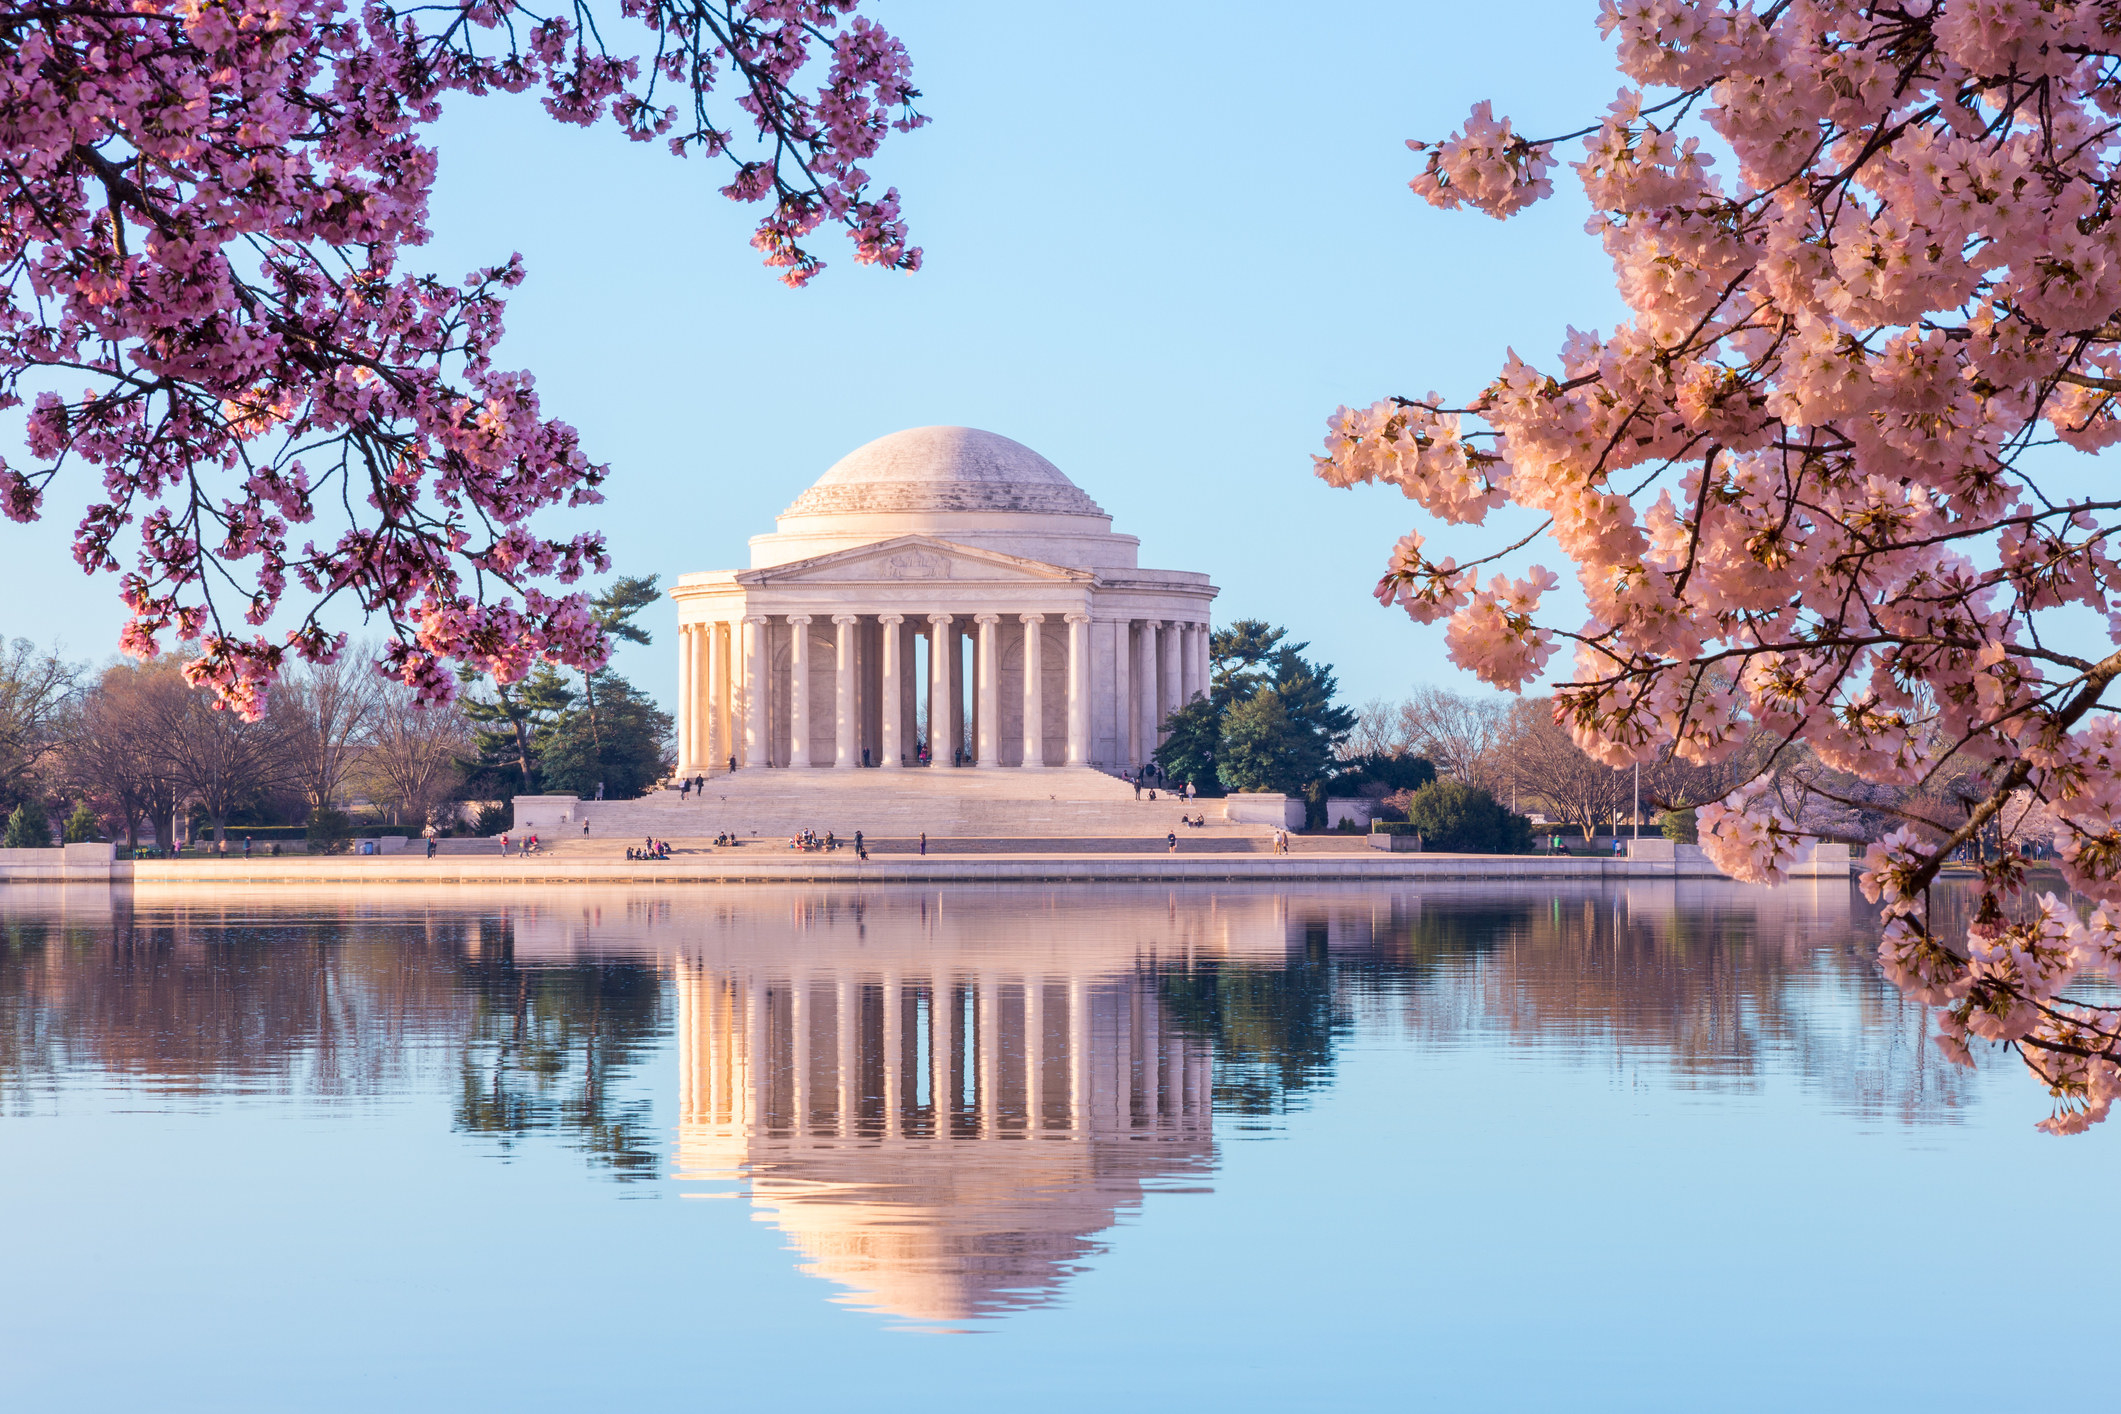 Jefferson Memorial in the background with cherry blossom branches surrounding it close to the camera and the reflection of the building in the water